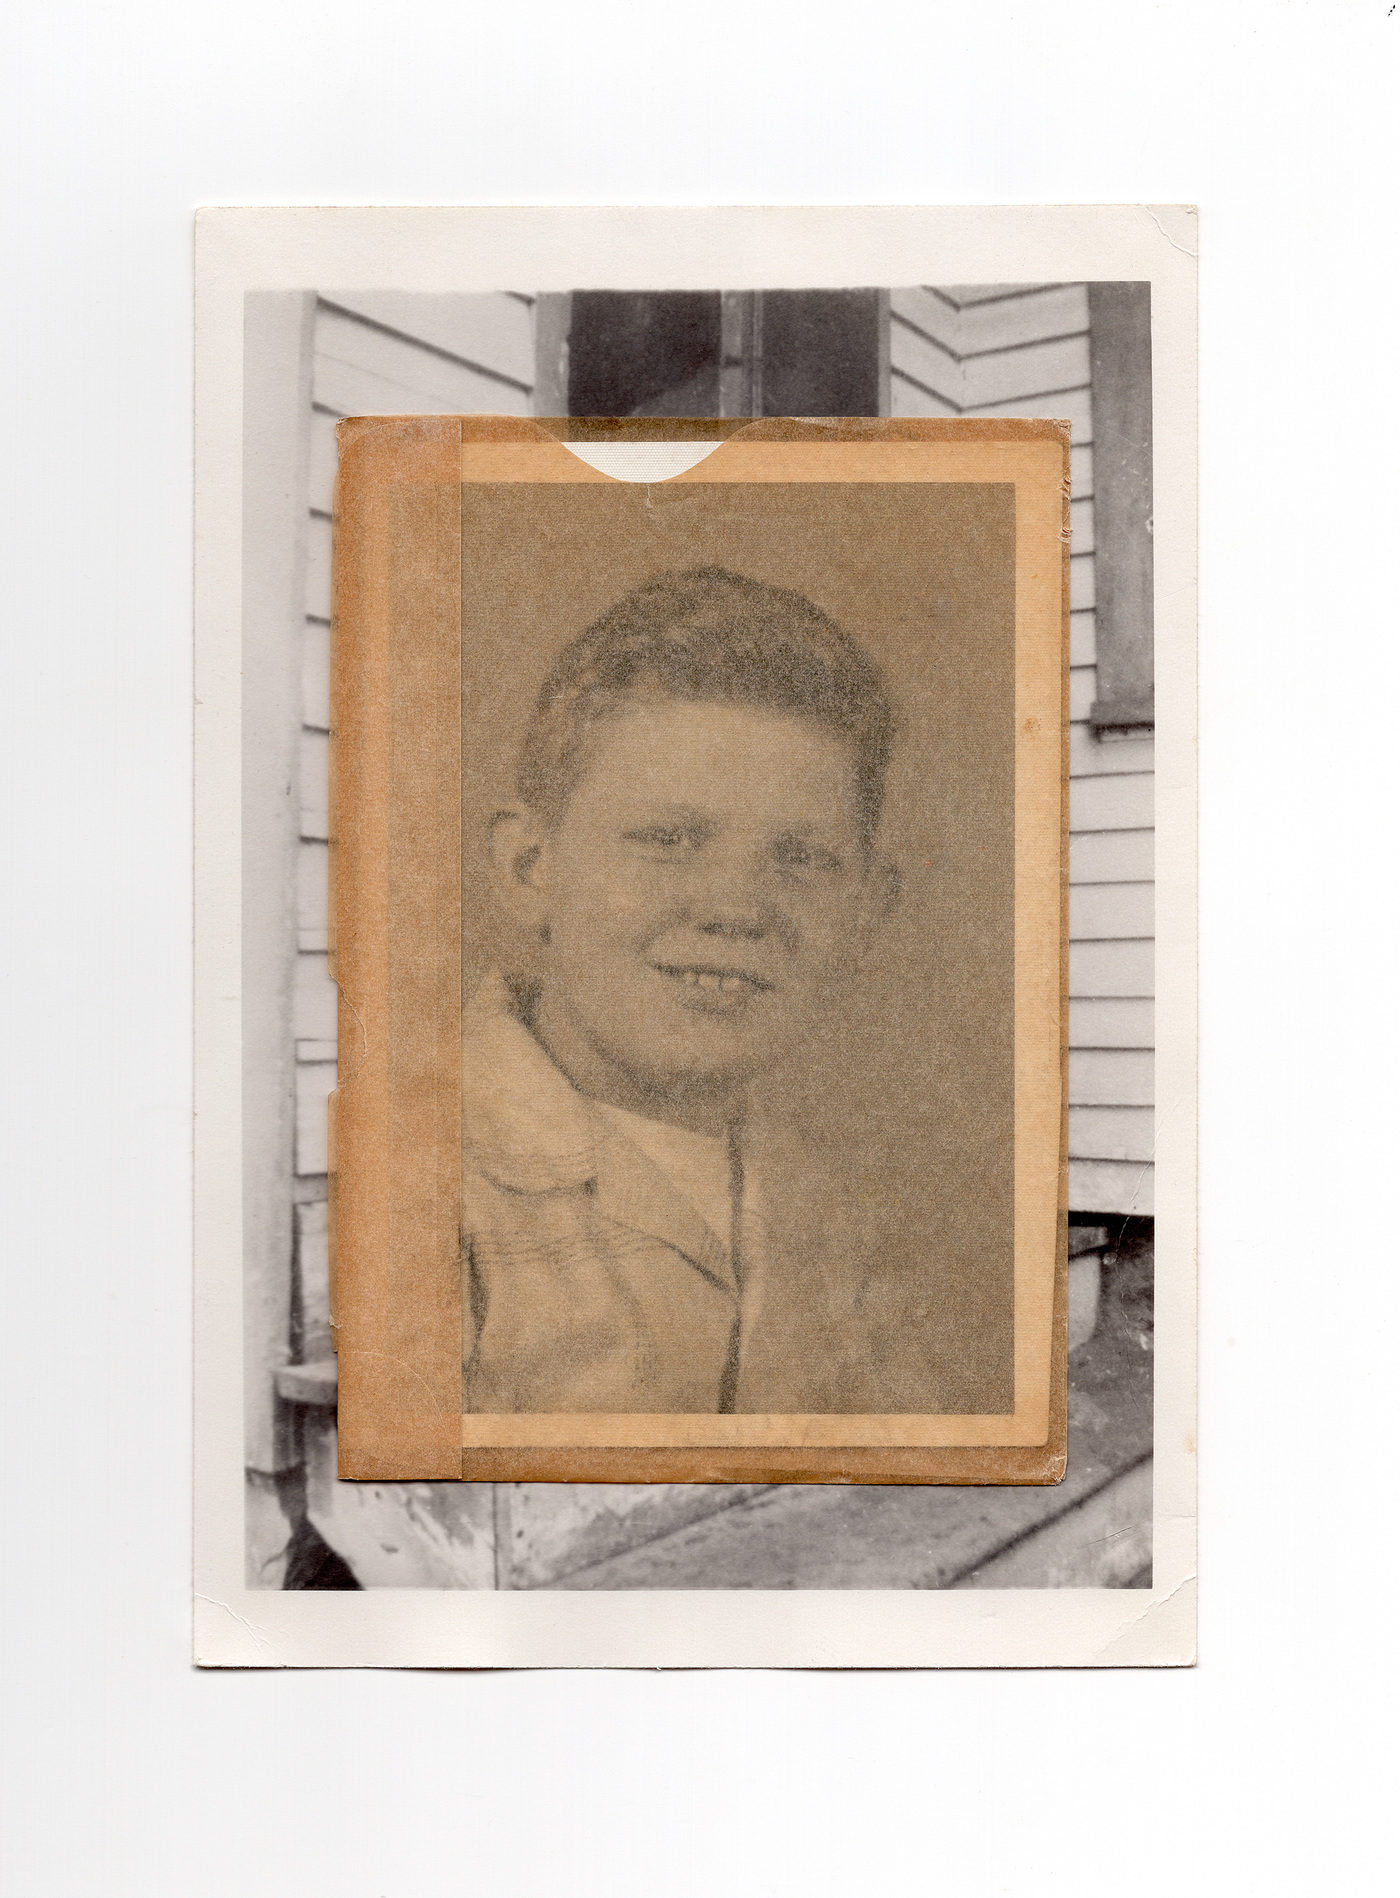 Brian Garbrecht - Johnny Boy 2020. Layered Family Archive.